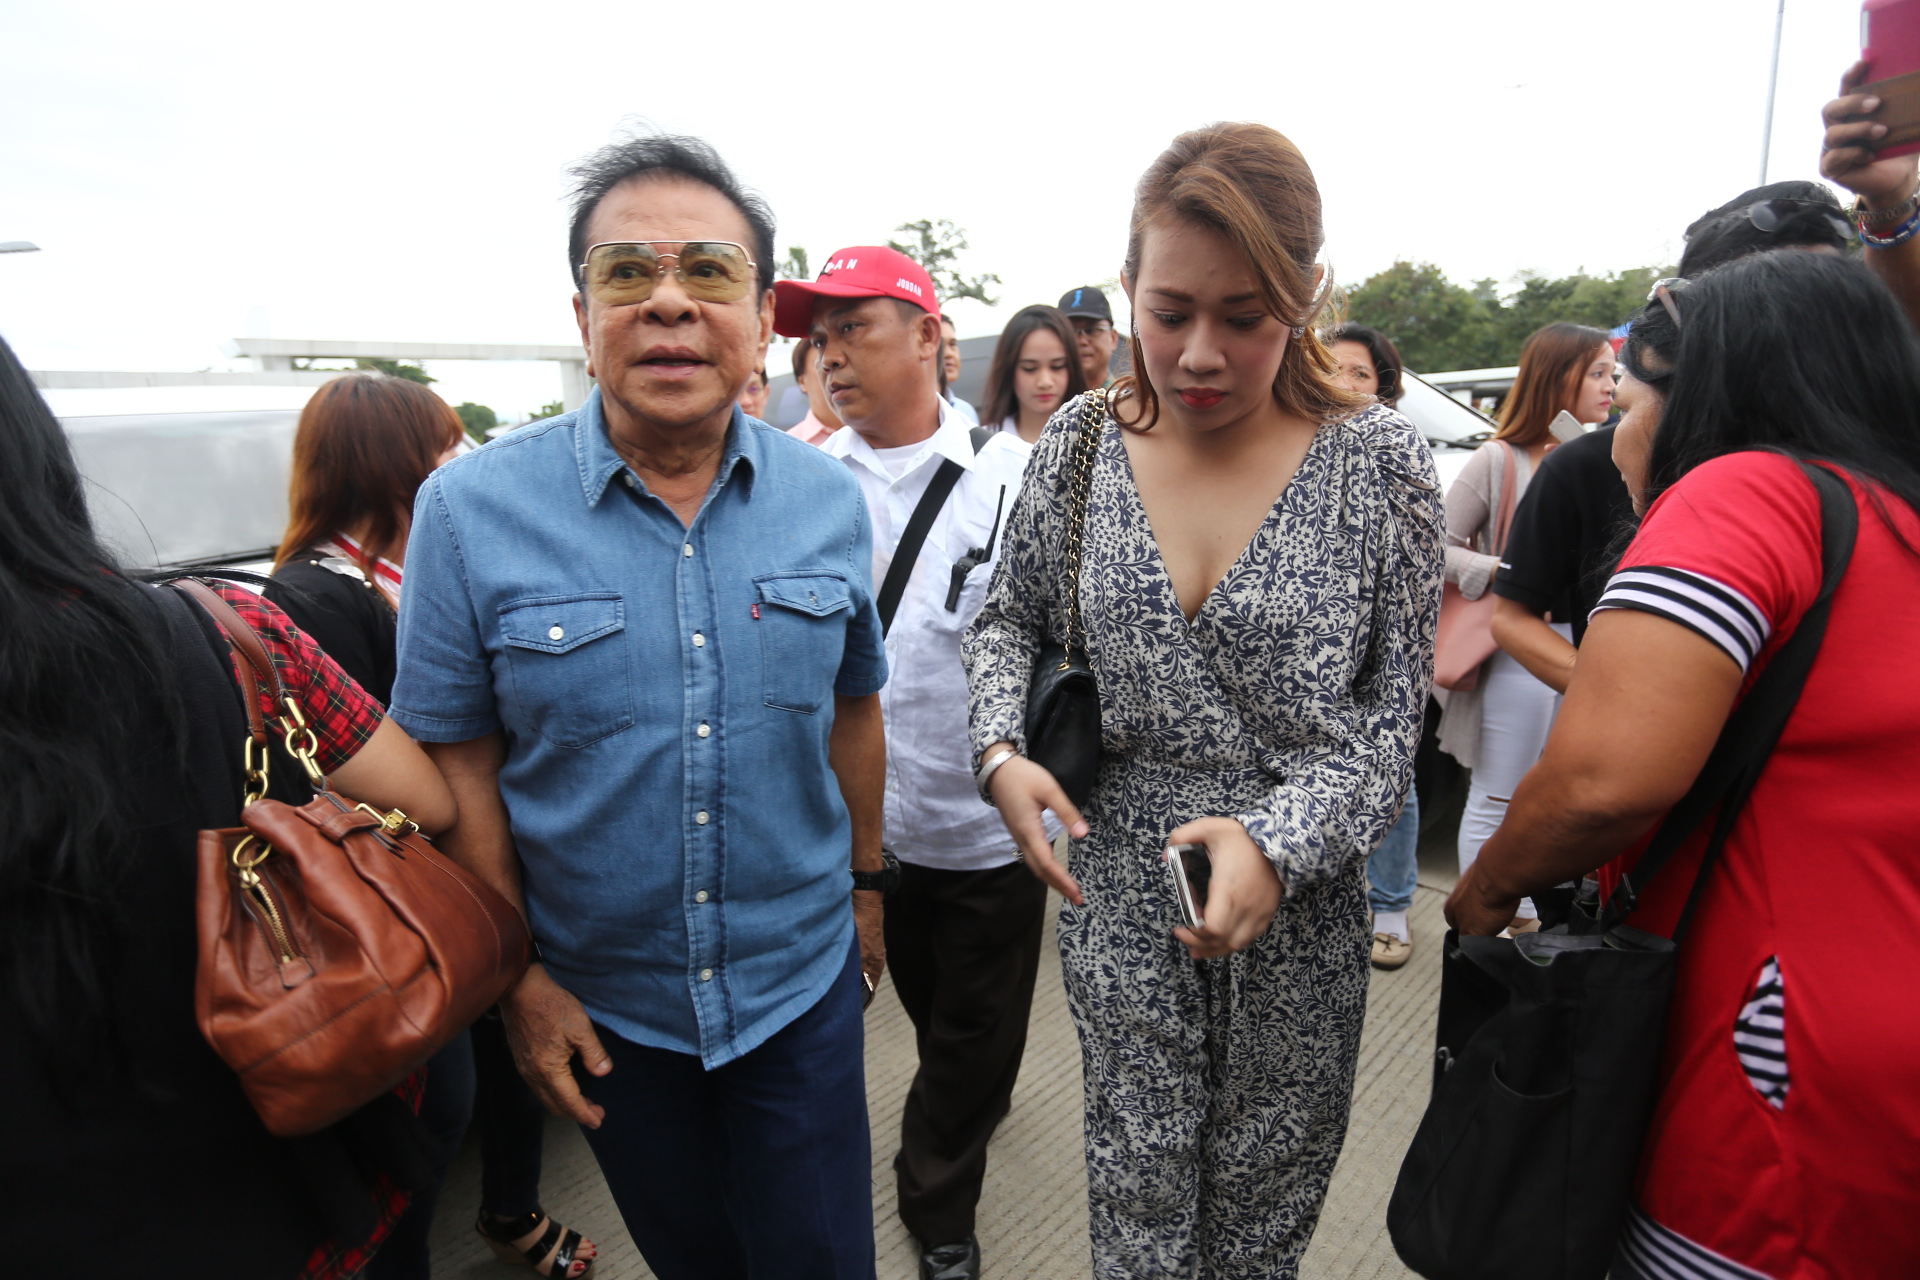 WHO'S WHO. Chavit Singson arrives at the Matina Enclaves in Davao City to meet with President-elect Rodrigo Duterte on May 16. Photo by Manman Dejeto/Rappler